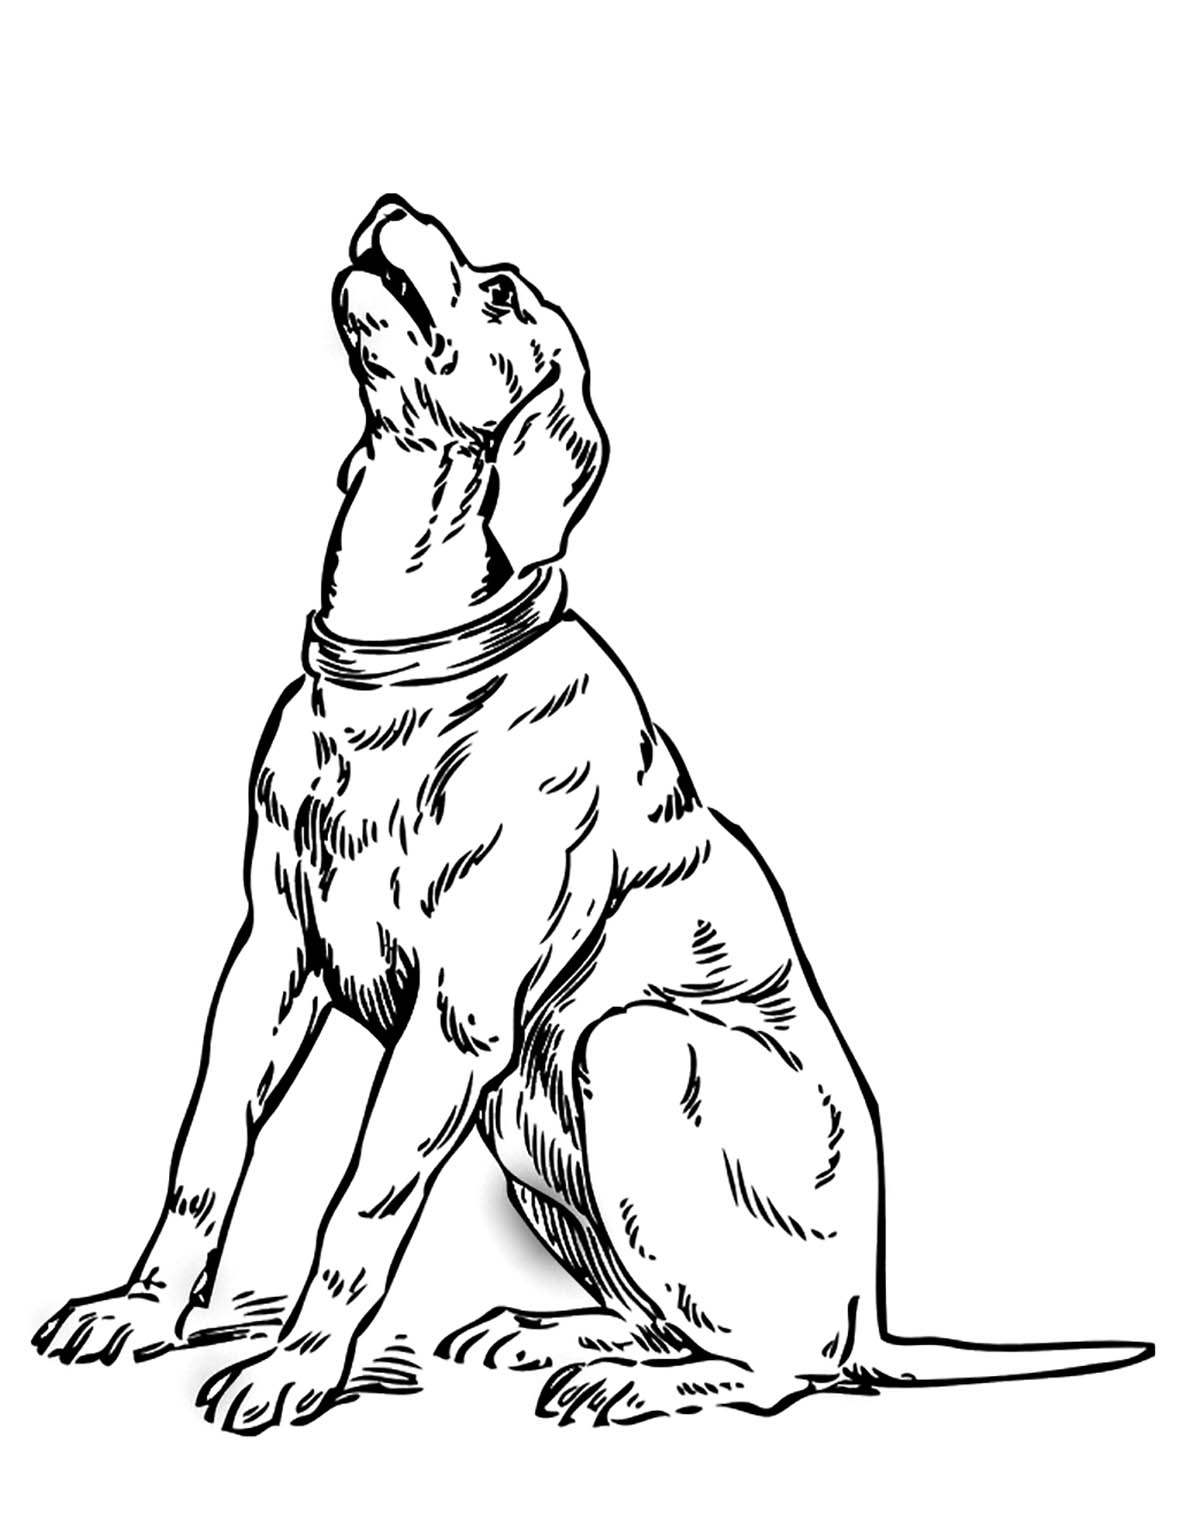 Dog to print for free - Dogs Kids Coloring Pages